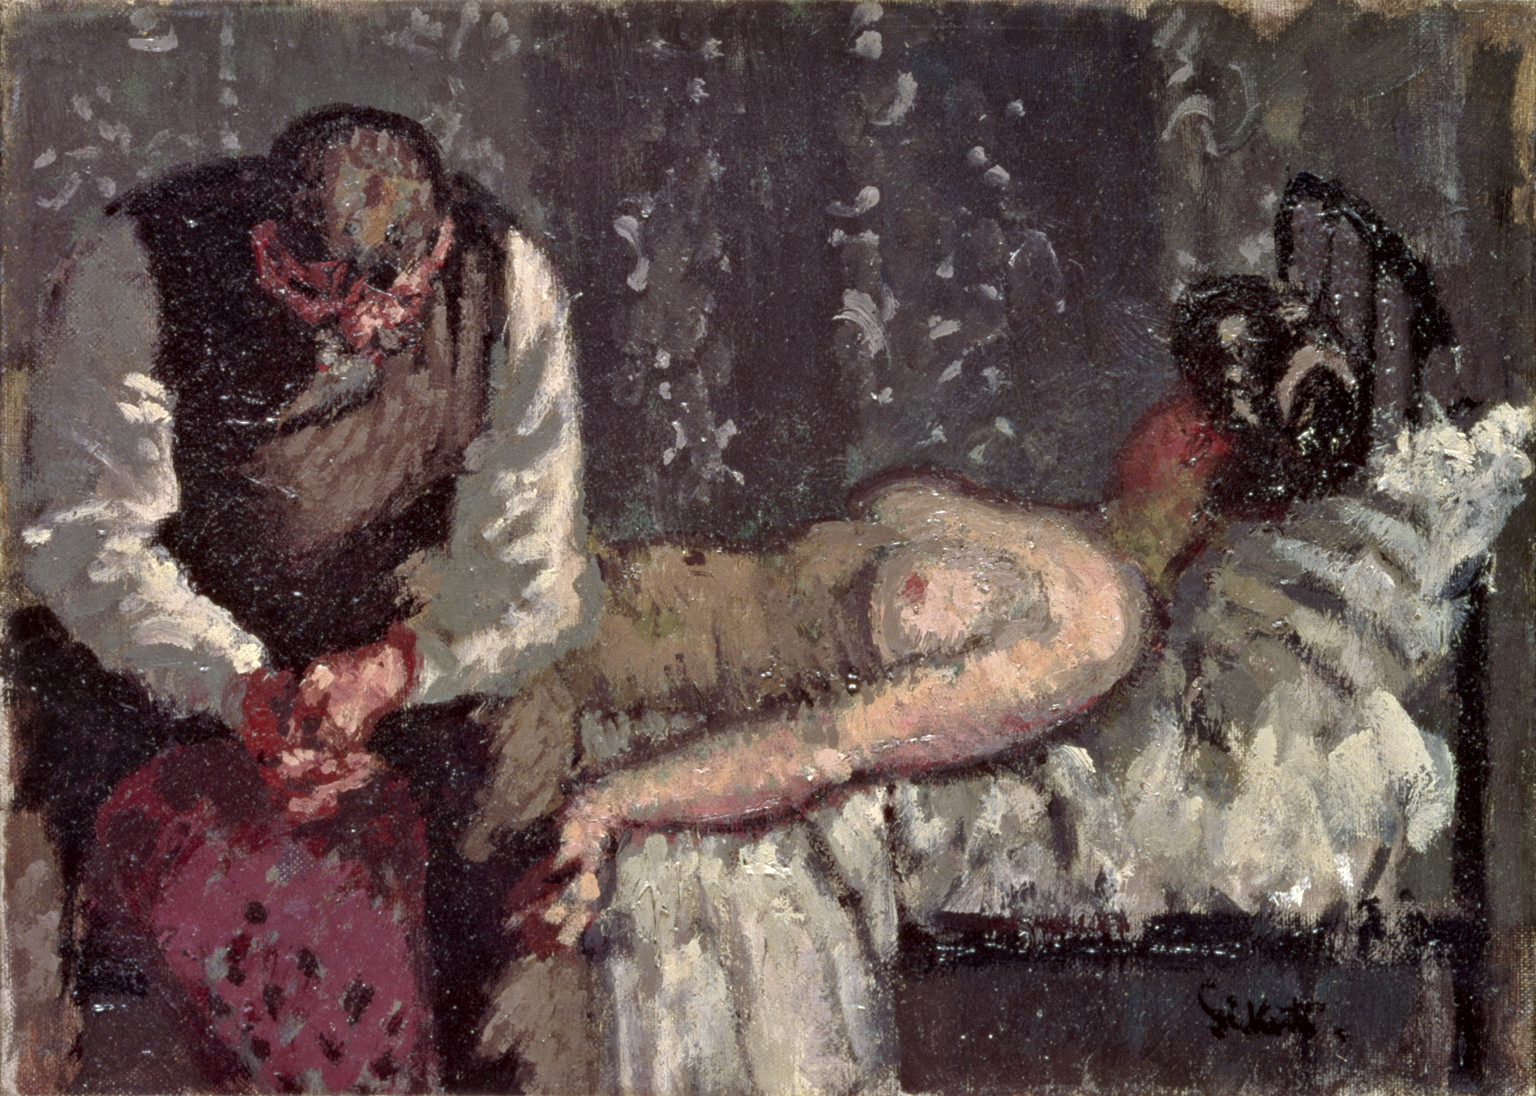 sickert, the camden town murder, 1908